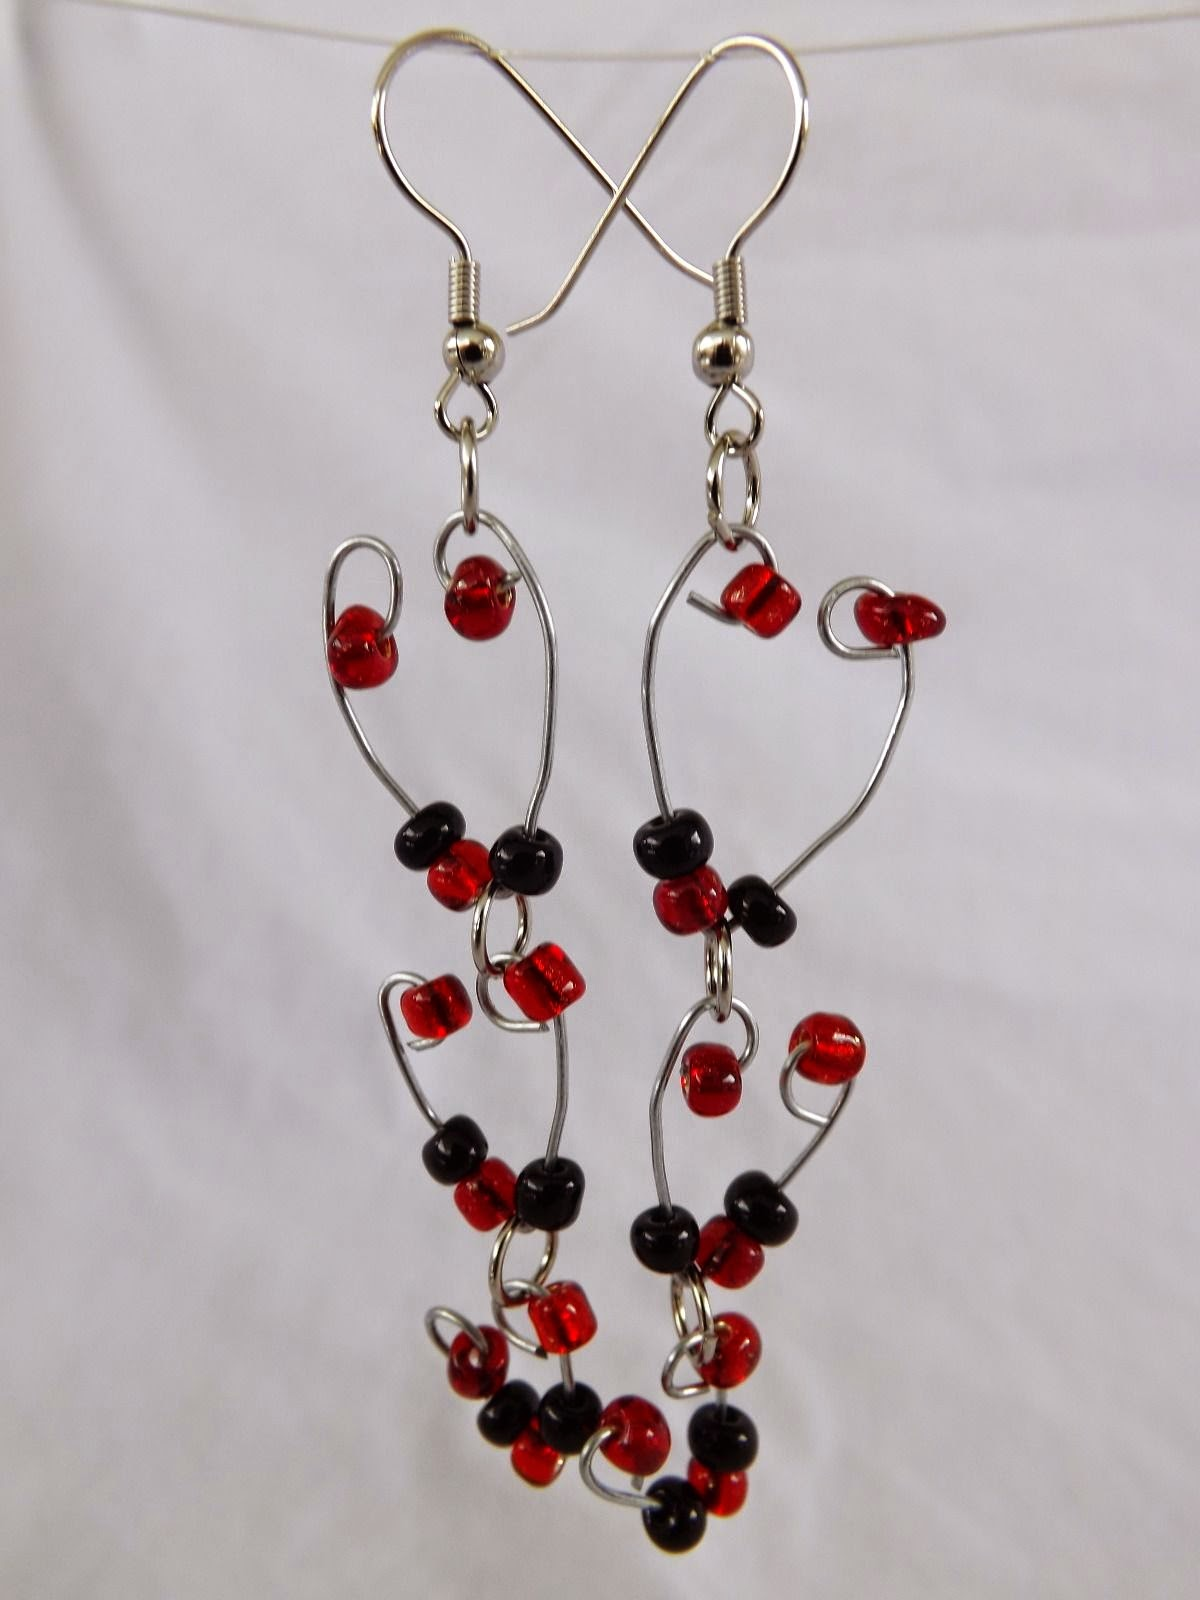 http://www.ebay.com/itm/Decending-Heart-Earrings-Handmade-glass-dangle-with-stainless-steel-hook-/261770352940?fb_action_ids=318219618366541&fb_action_types=og.shares&fb_source=other_multiline&action_object_map=%5B857778784264377%5D&action_type_map=%5B%22og.shares%22%5D&action_ref_map=%5B%5D